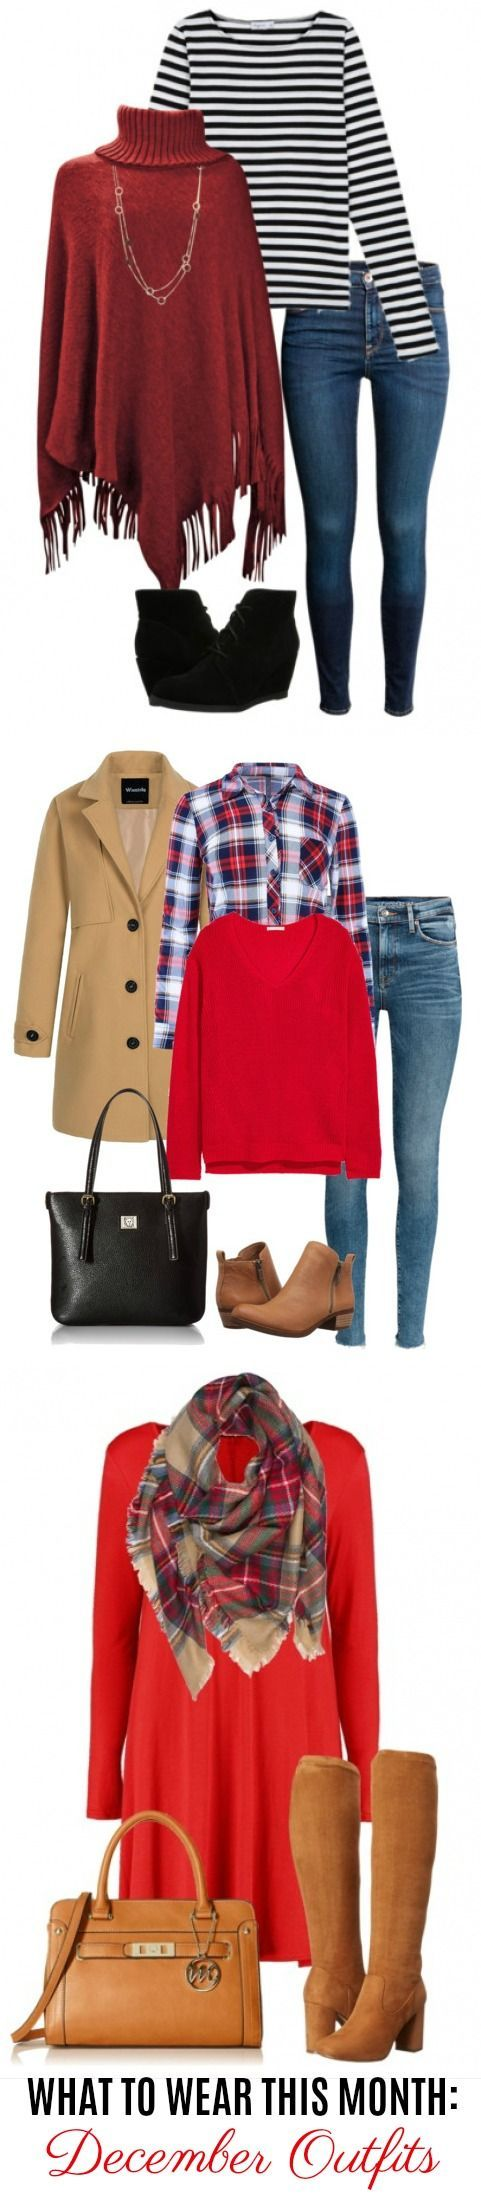 What to Wear This Month: 15 December Outfit Ideas | Mom Fabulous